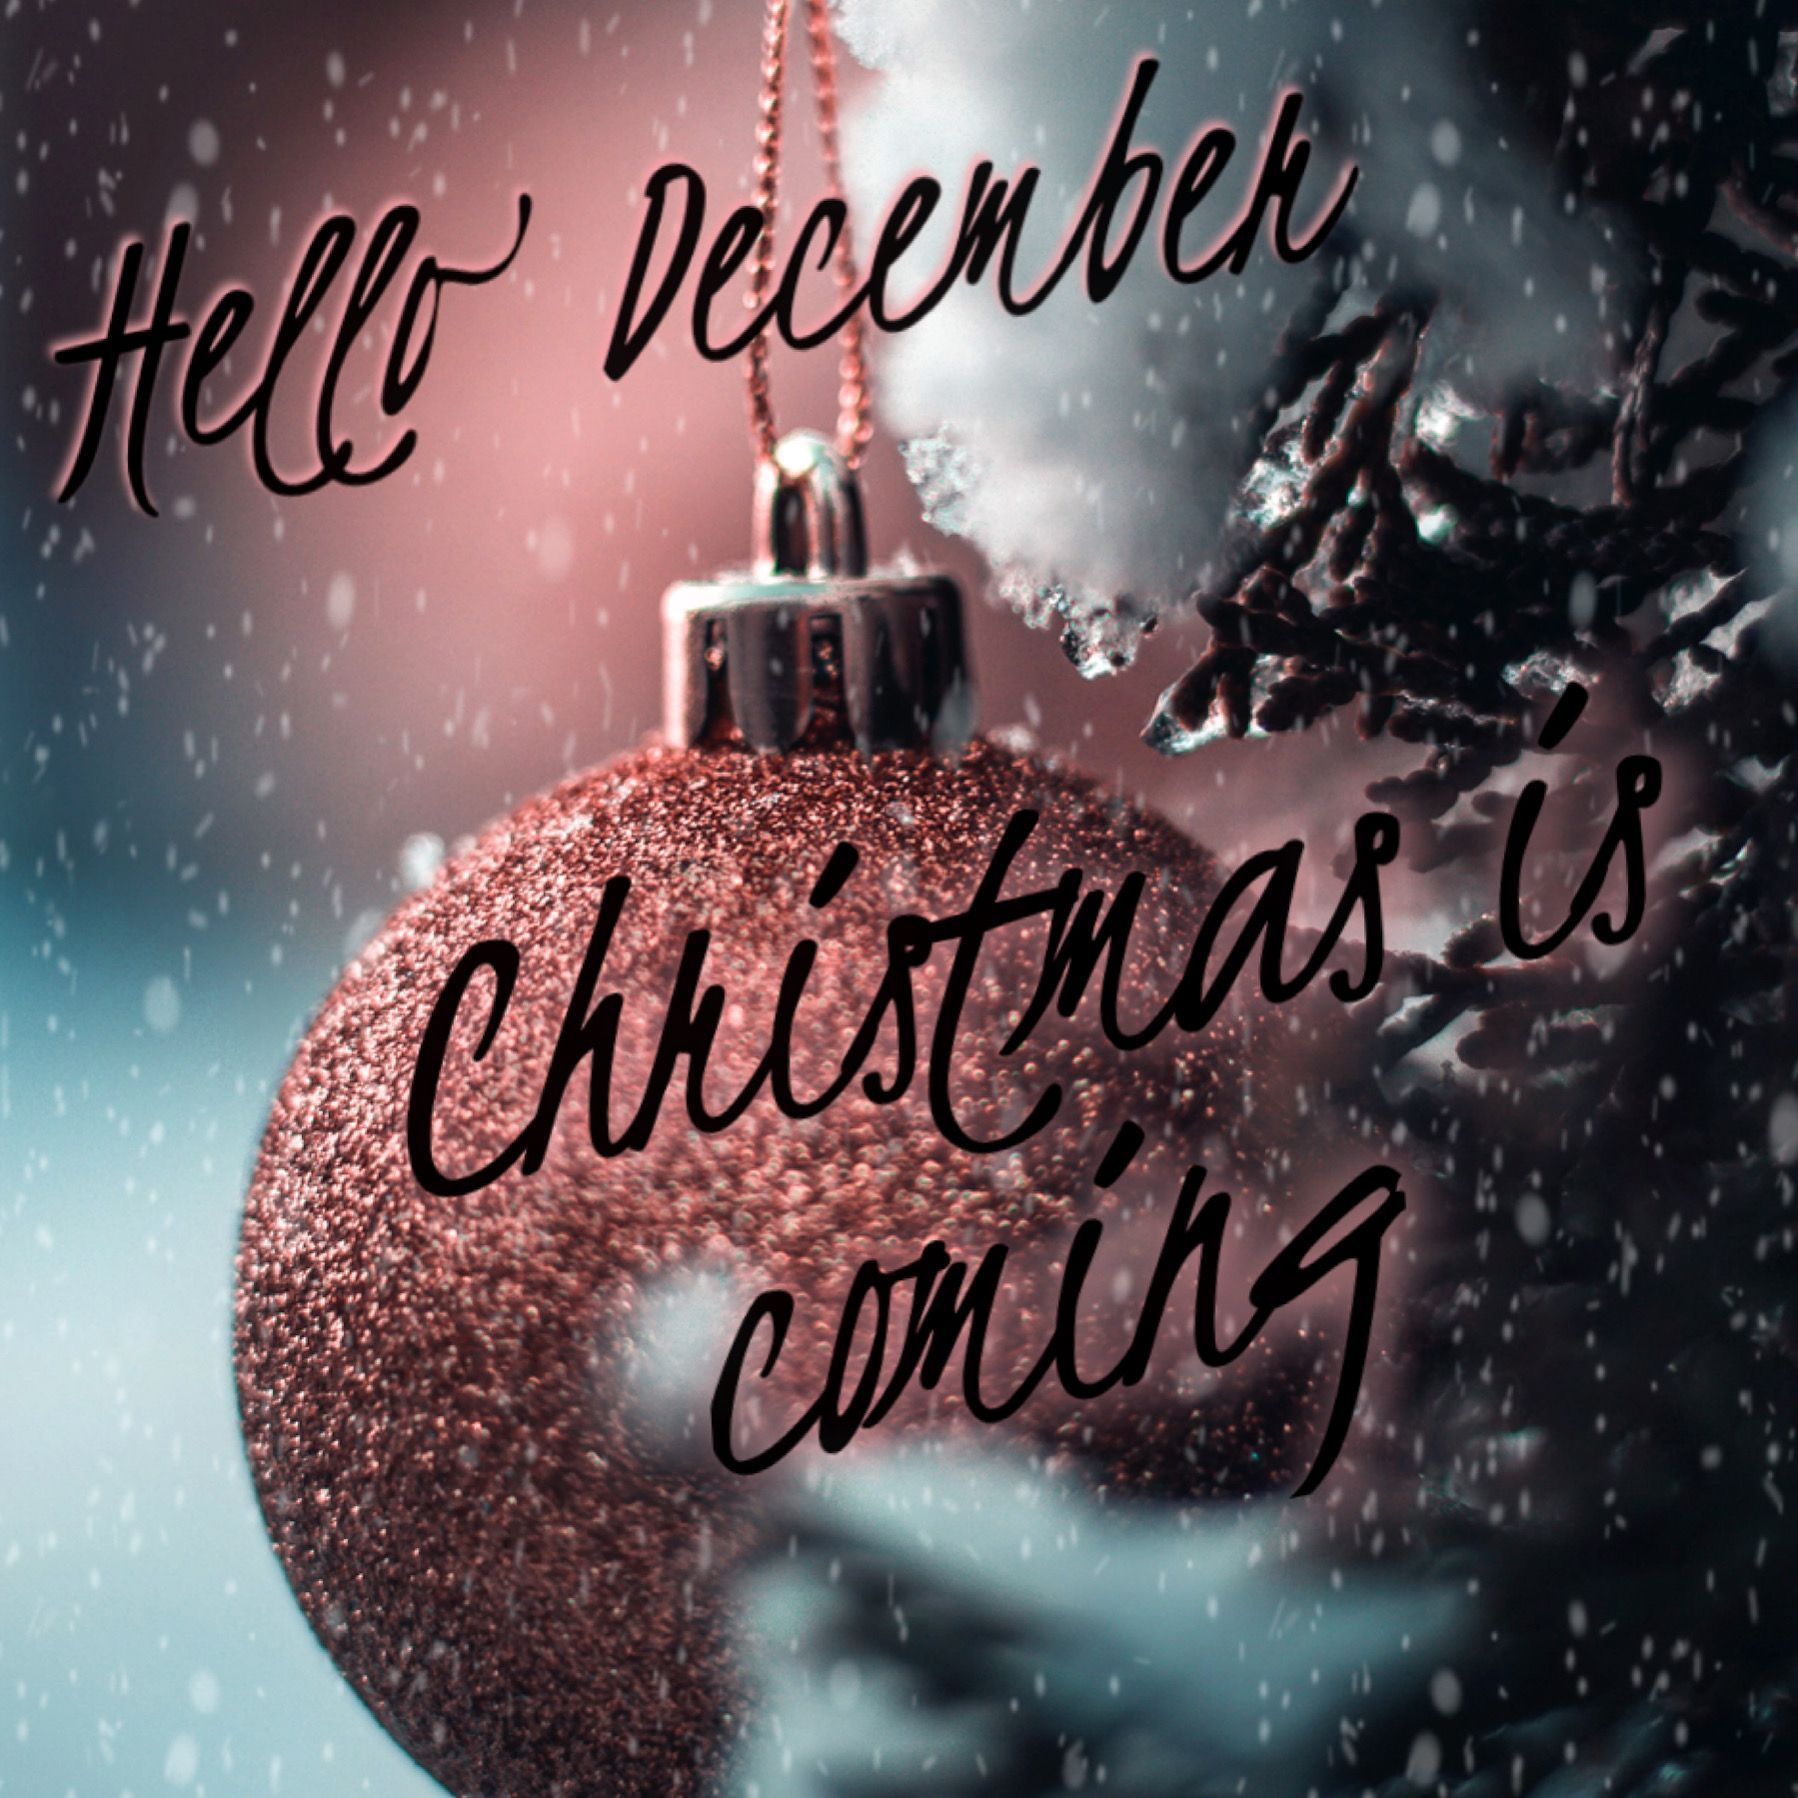 Hello December #hellodecemberchristmas Hello December Christmas is coming #hellodecemberchristmas Hello December #hellodecemberchristmas Hello December Christmas is coming #hellodecemberchristmas Hello December #hellodecemberchristmas Hello December Christmas is coming #hellodecemberchristmas Hello December #hellodecemberchristmas Hello December Christmas is coming #hellodecember Hello December #hellodecemberchristmas Hello December Christmas is coming #hellodecemberchristmas Hello December #hel #hellodecemberchristmas